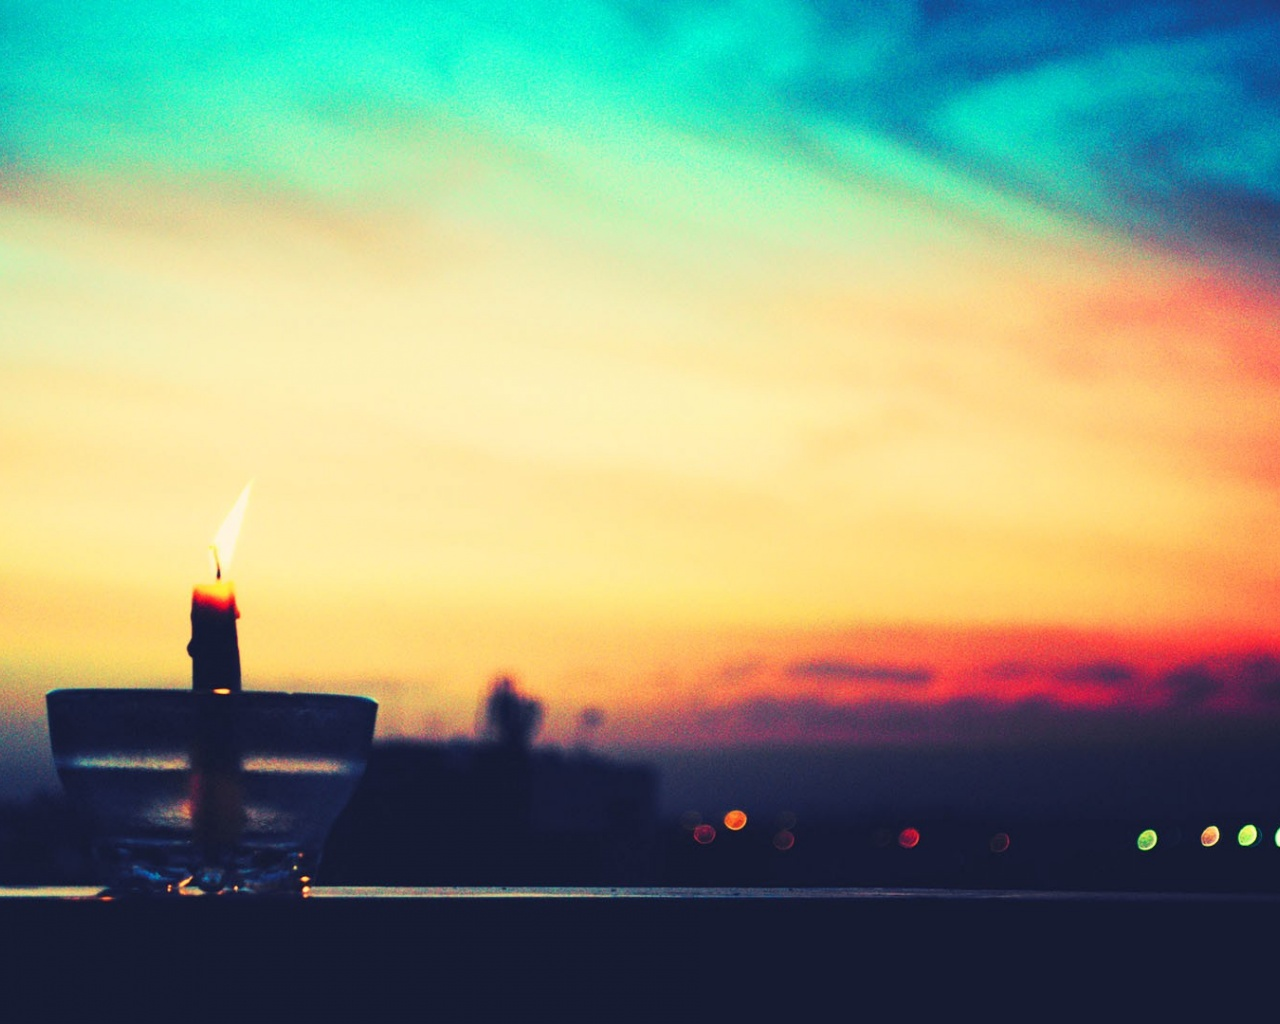 1280x1024 Candle At Sunset Desktop Pc And Mac Wallpaper